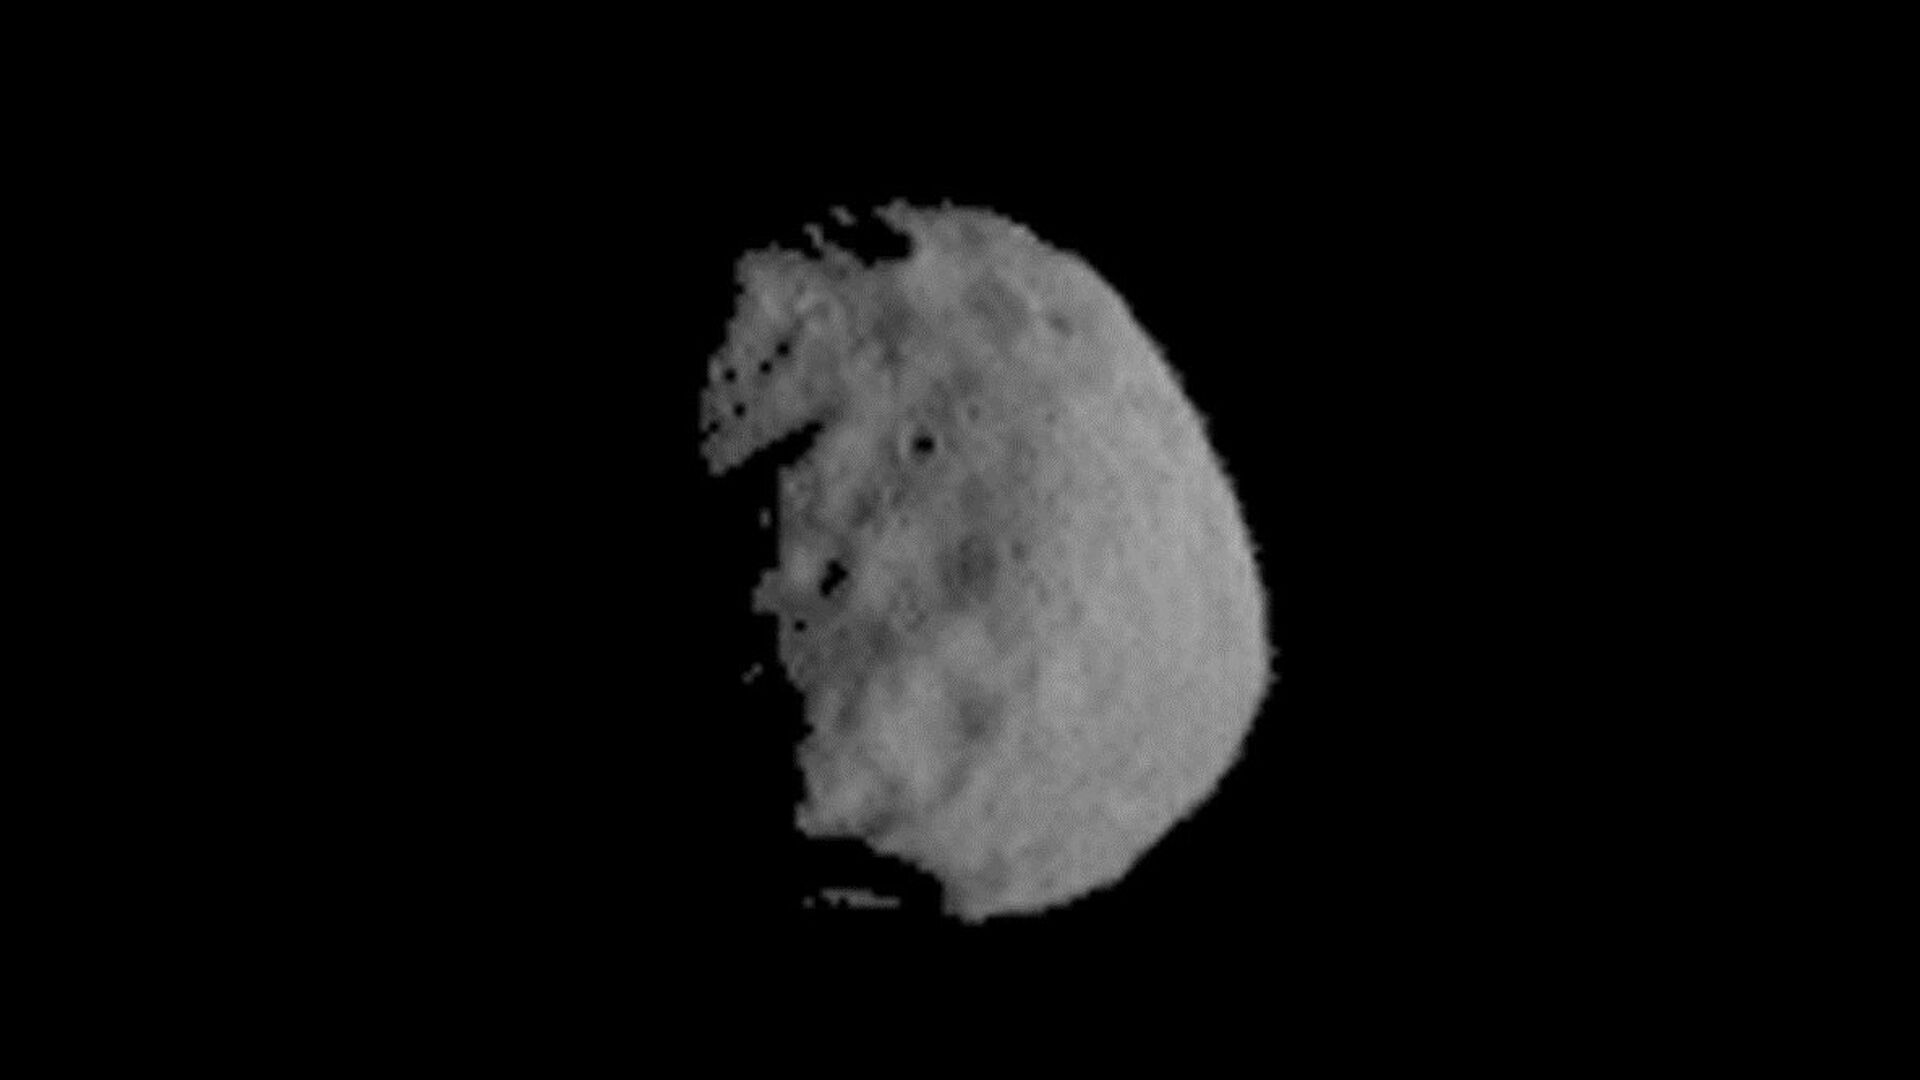 This image of Phobos is one product of the first pointing at that Martian moon by the THEMIS camera on NASA's Mars Odyssey orbiter. - Sputnik Italia, 1920, 30.06.2021